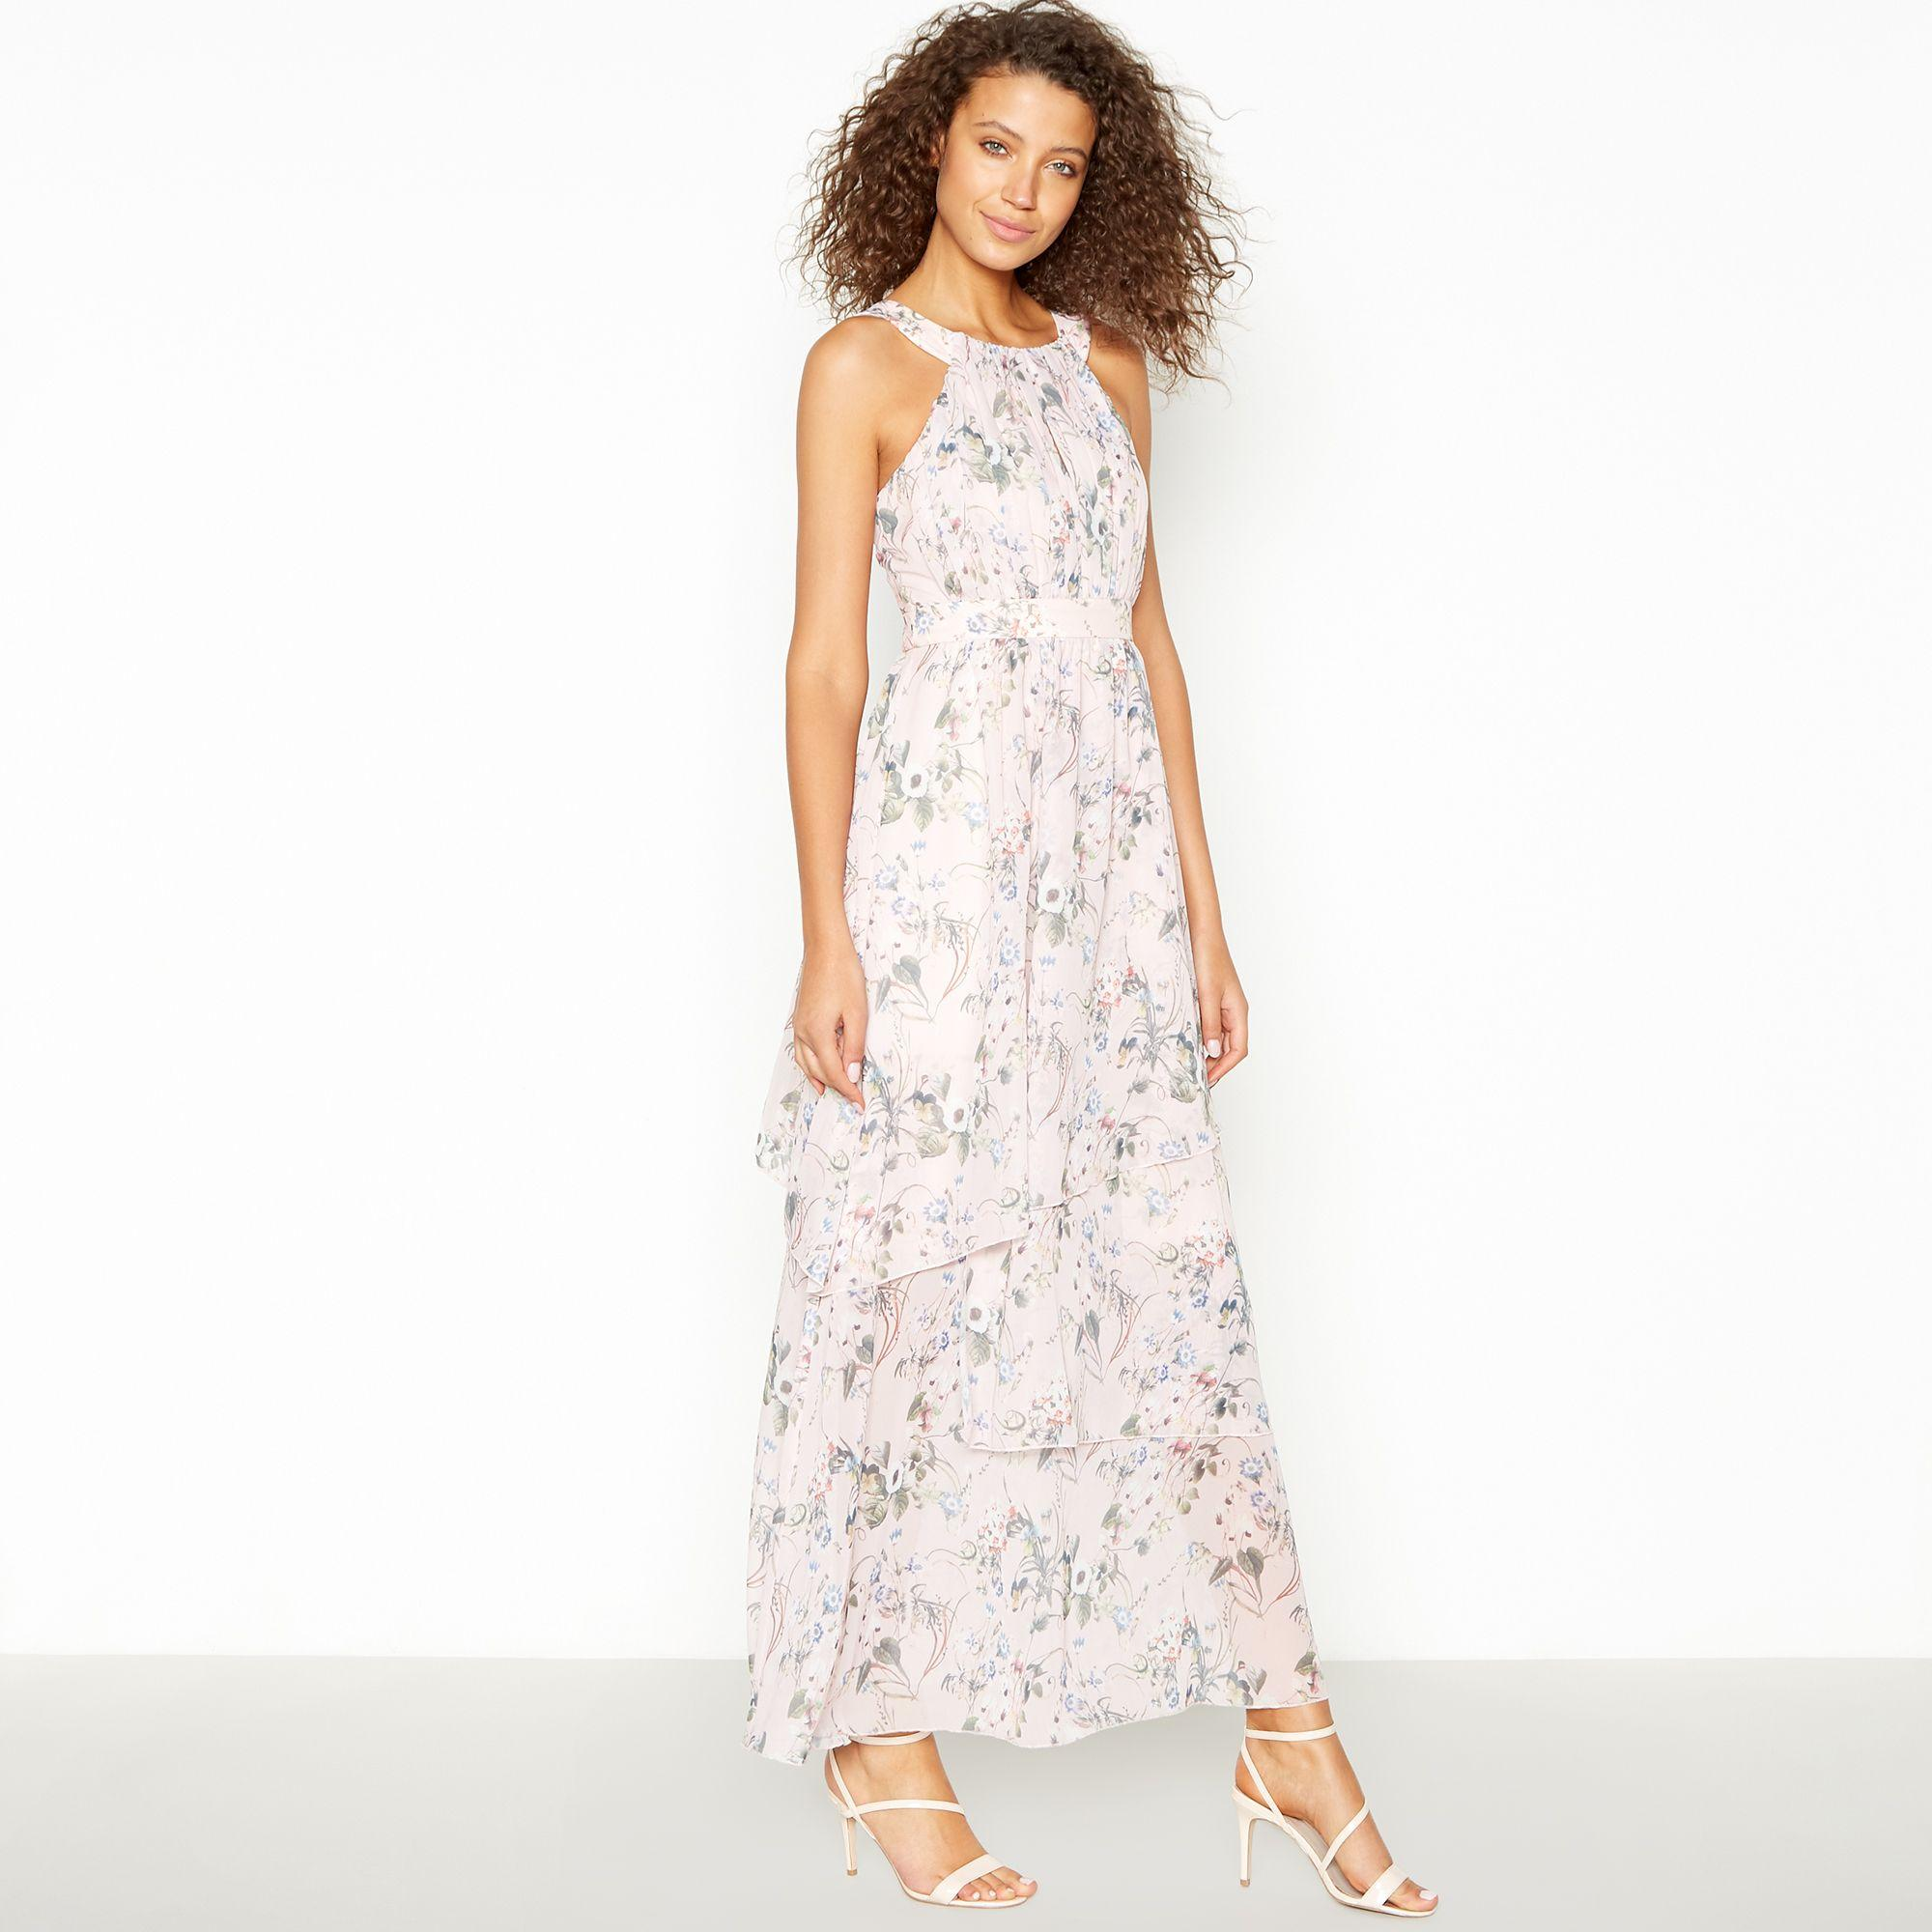 9b8f1c4c067e Vila. Women's Multicoloured Floral Chiffon 'vinola' Tiered Maxi Dress